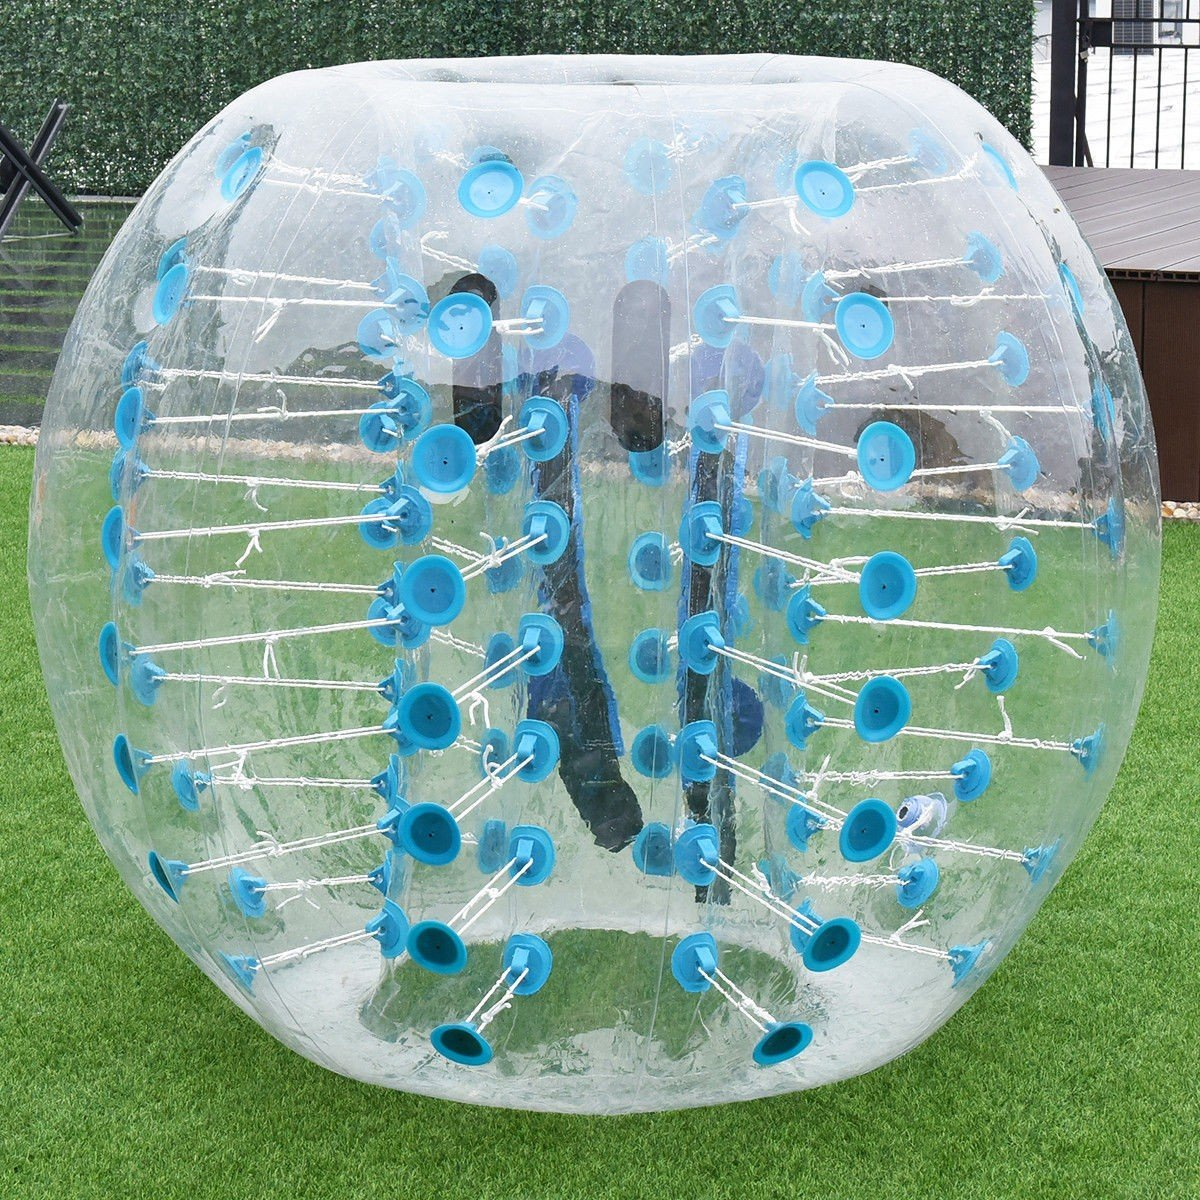 MD Group Inflatable Bumper Ball 1.5M Dia. 5' PVC Lightweight Sky Blue Transparent Outdoor by MD Group